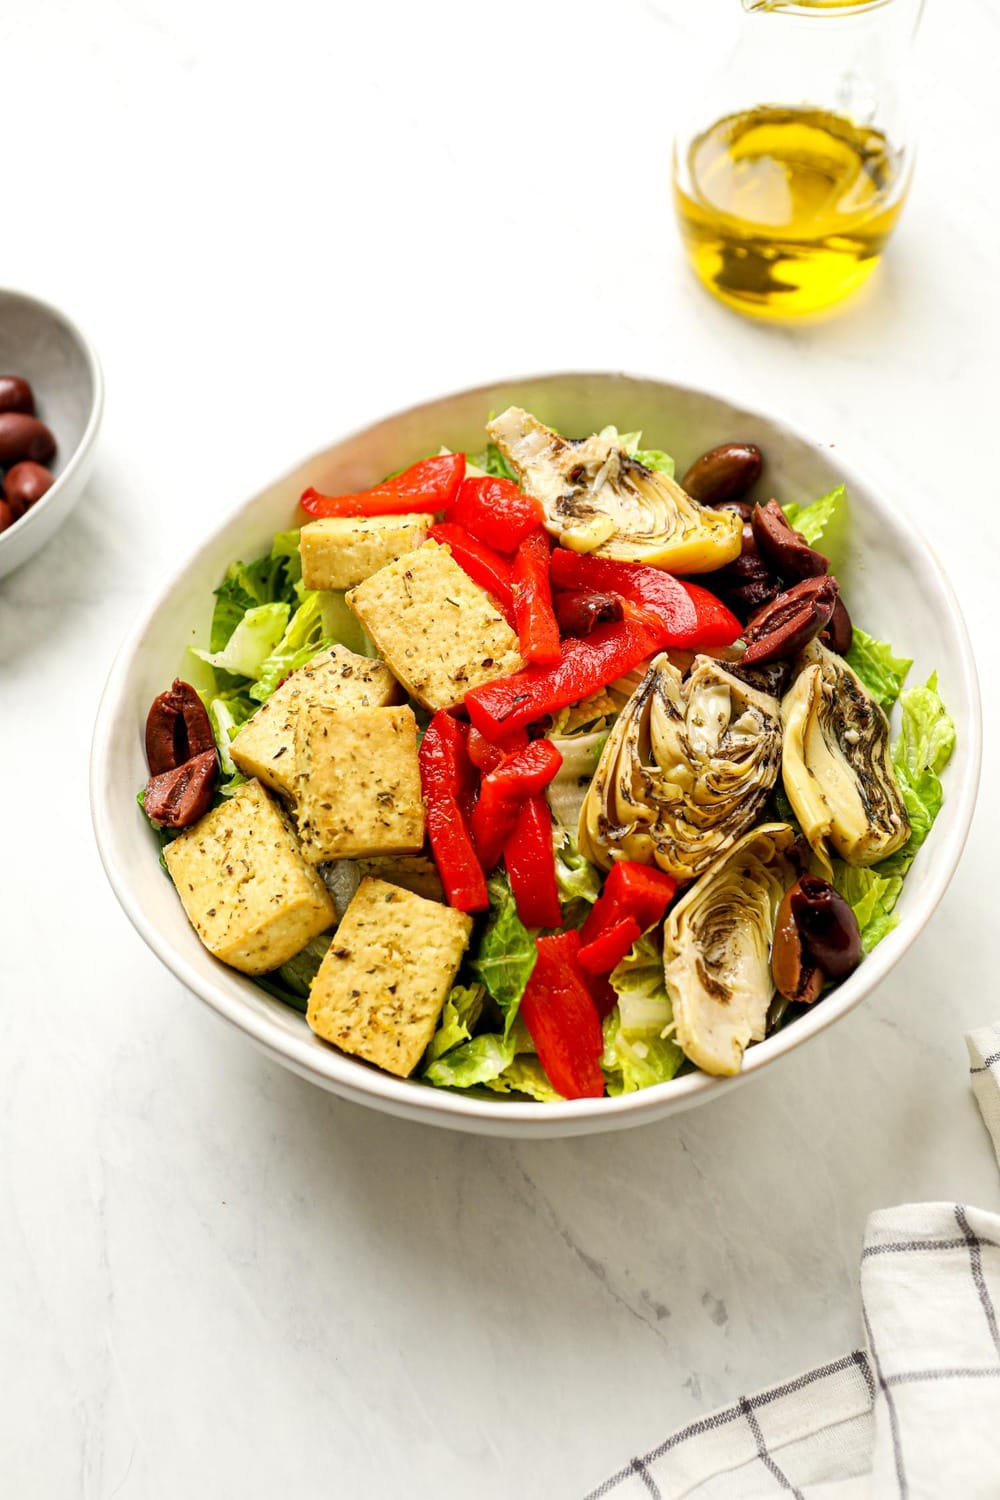 Italian chef salad with olives, peppers, tofu, and olive oil dressing.